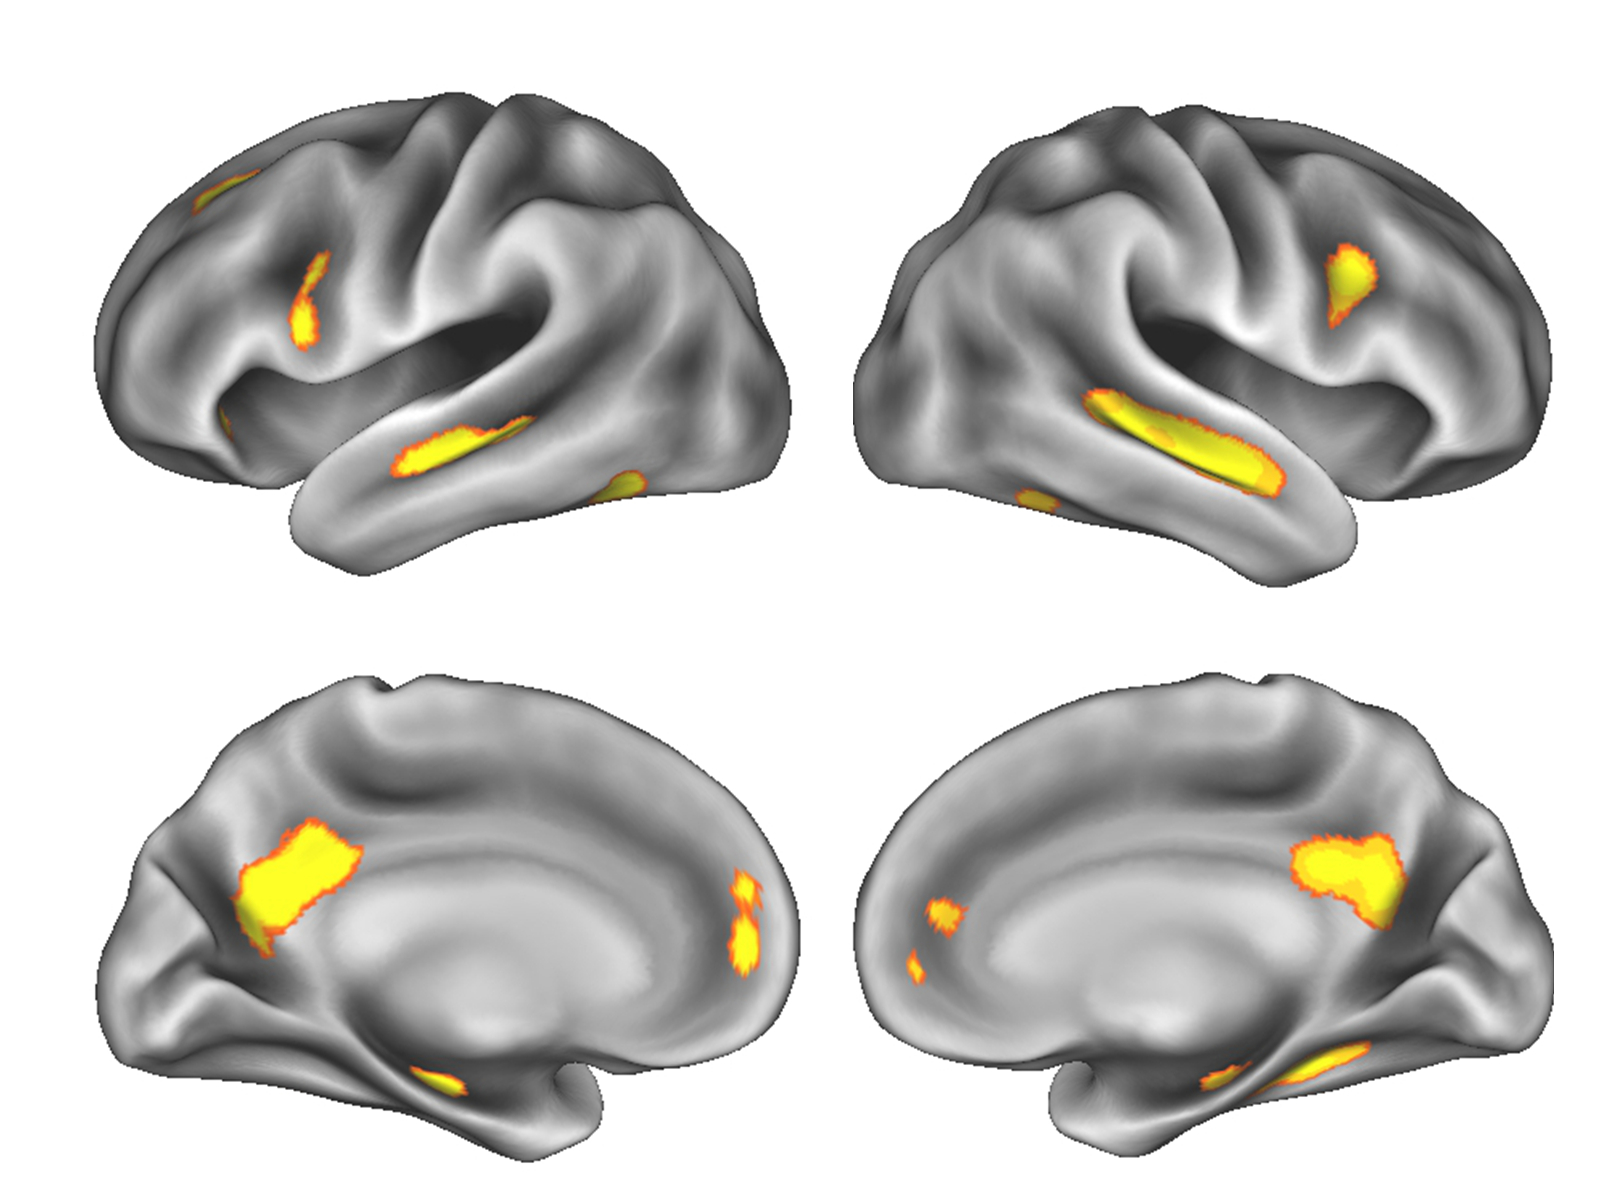 image of gray matter changes in the brain during pregnancy [ 1600 x 1200 Pixel ]